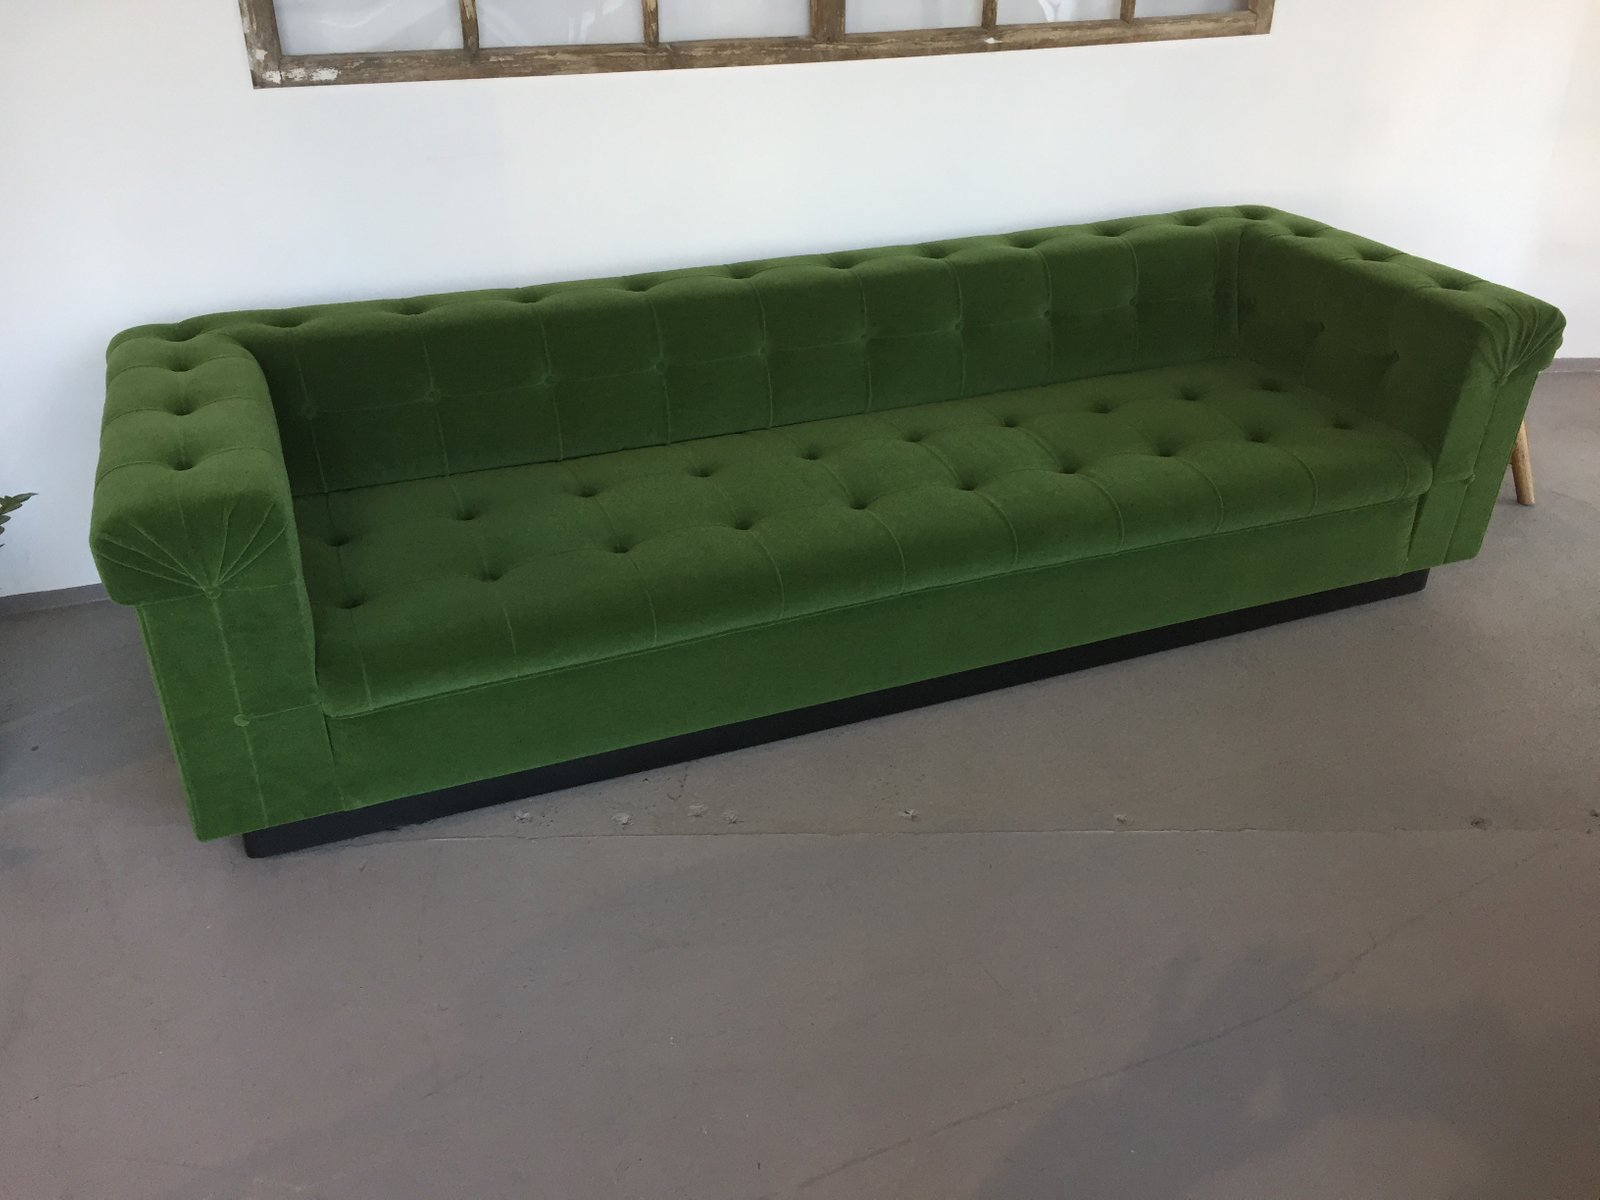 Party Sofa By Edward Wormley For Dunbar, 1954